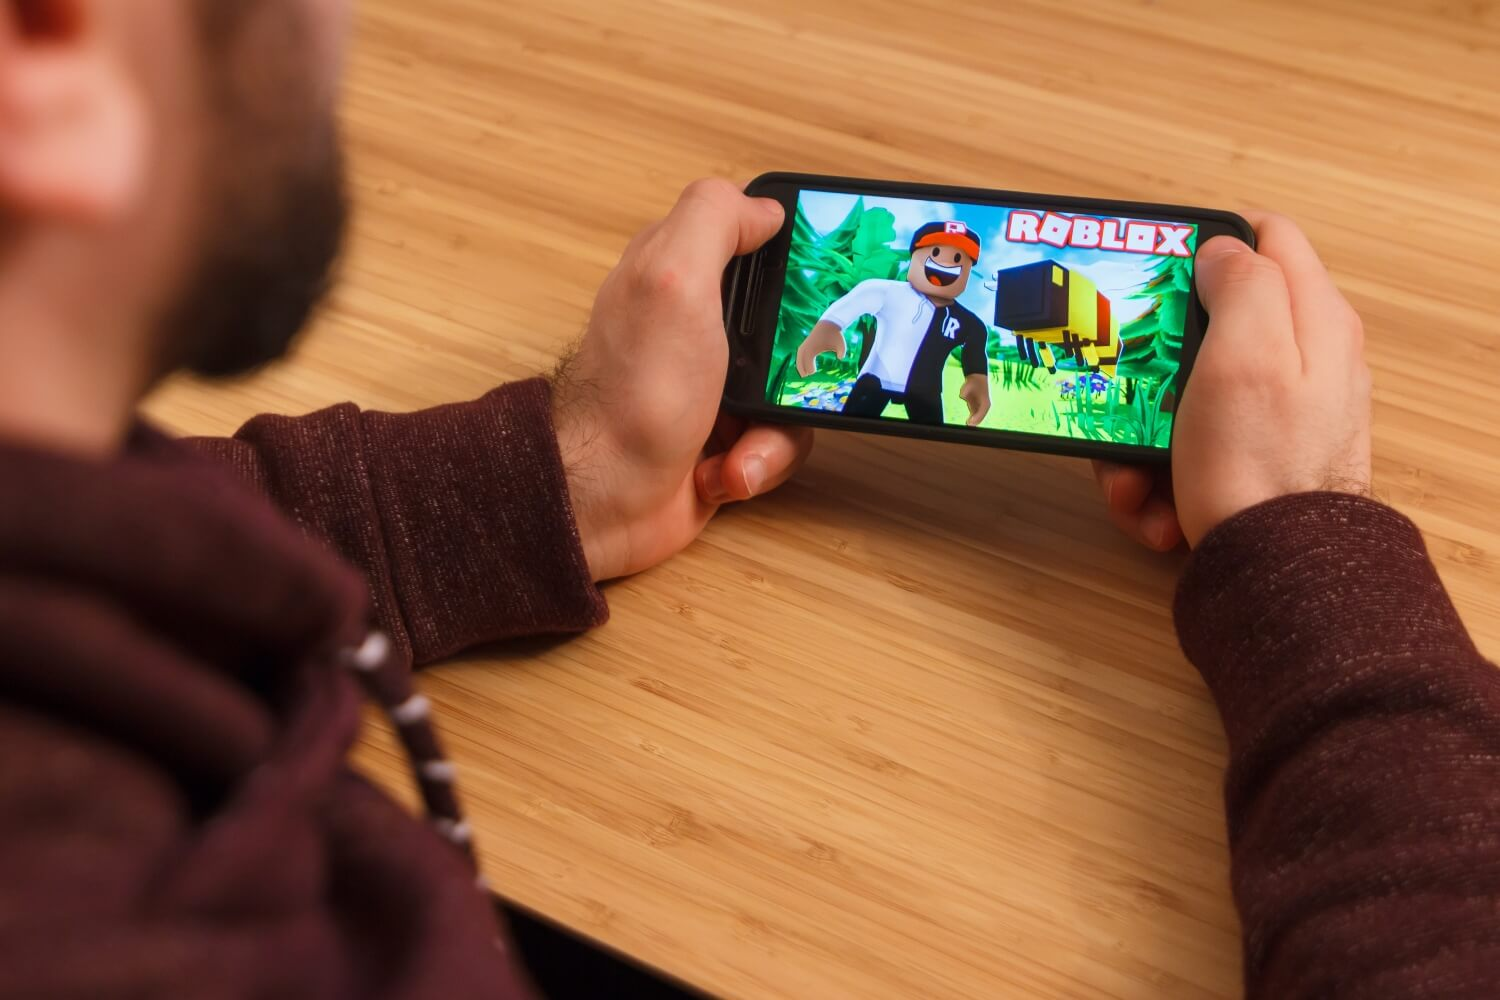 Roblox added 35 million monthly active users in just five months